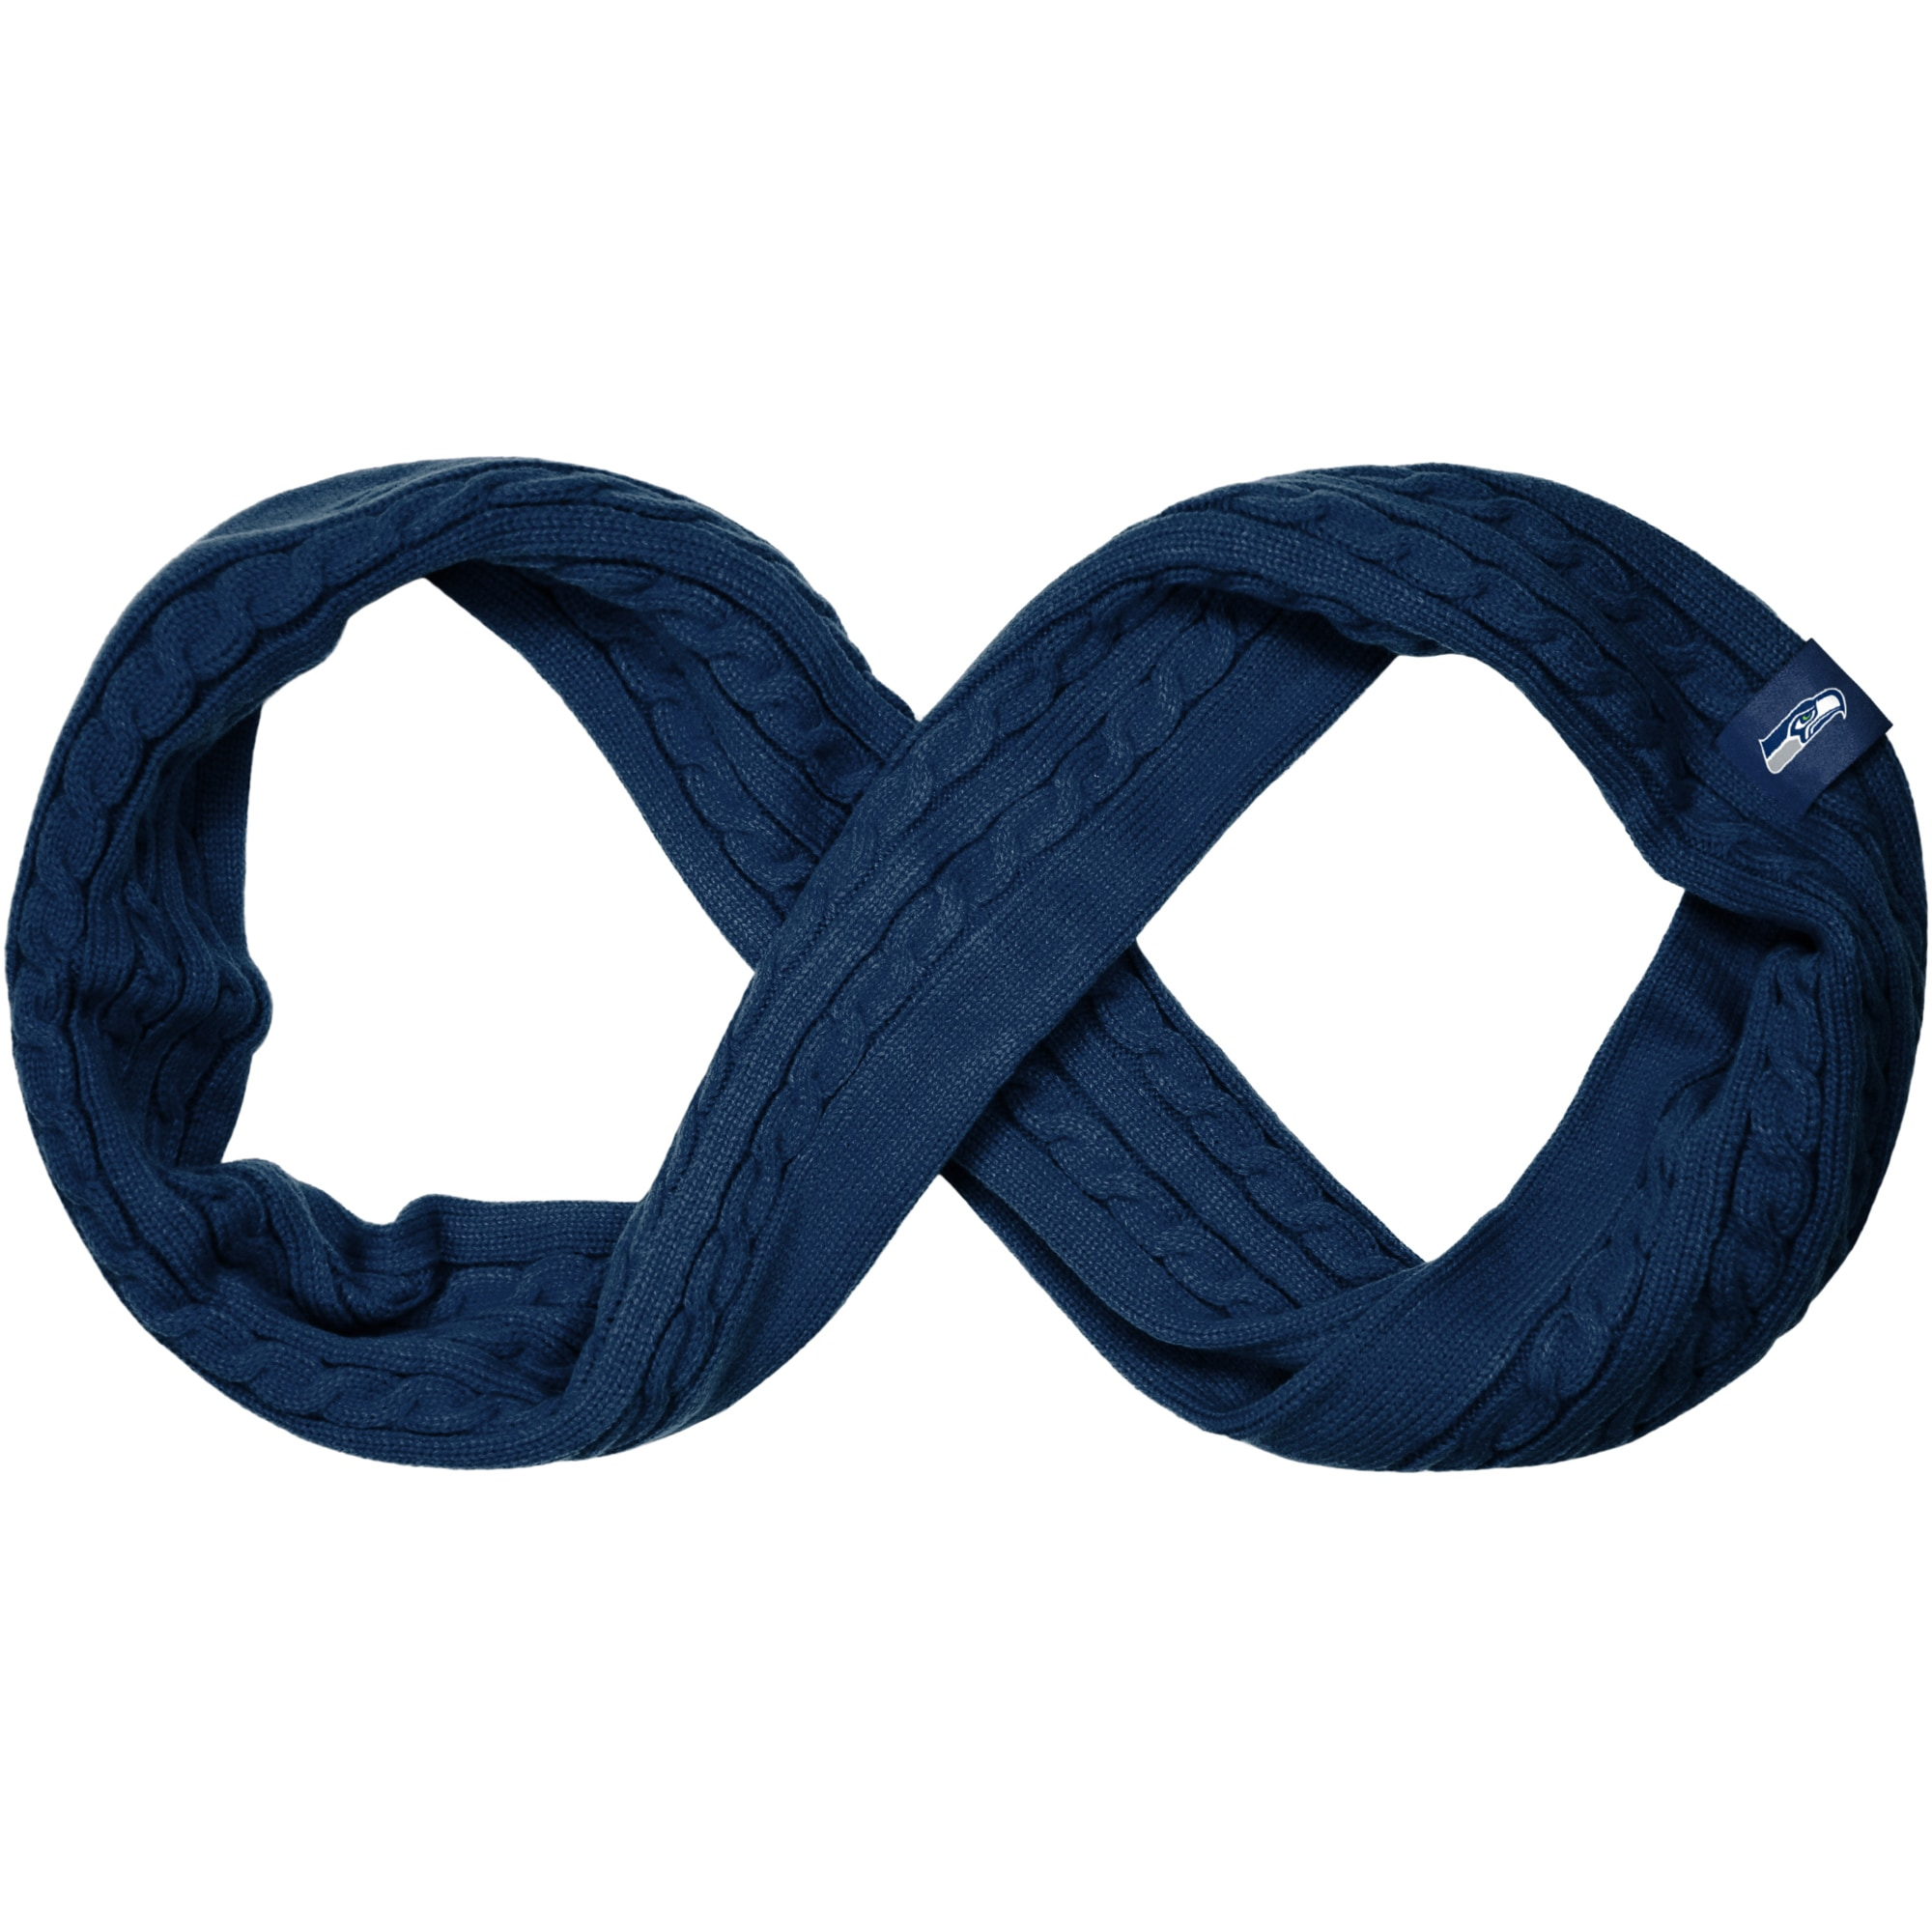 Seattle Seahawks Women's Cable Knit Infinity Scarf - College Navy